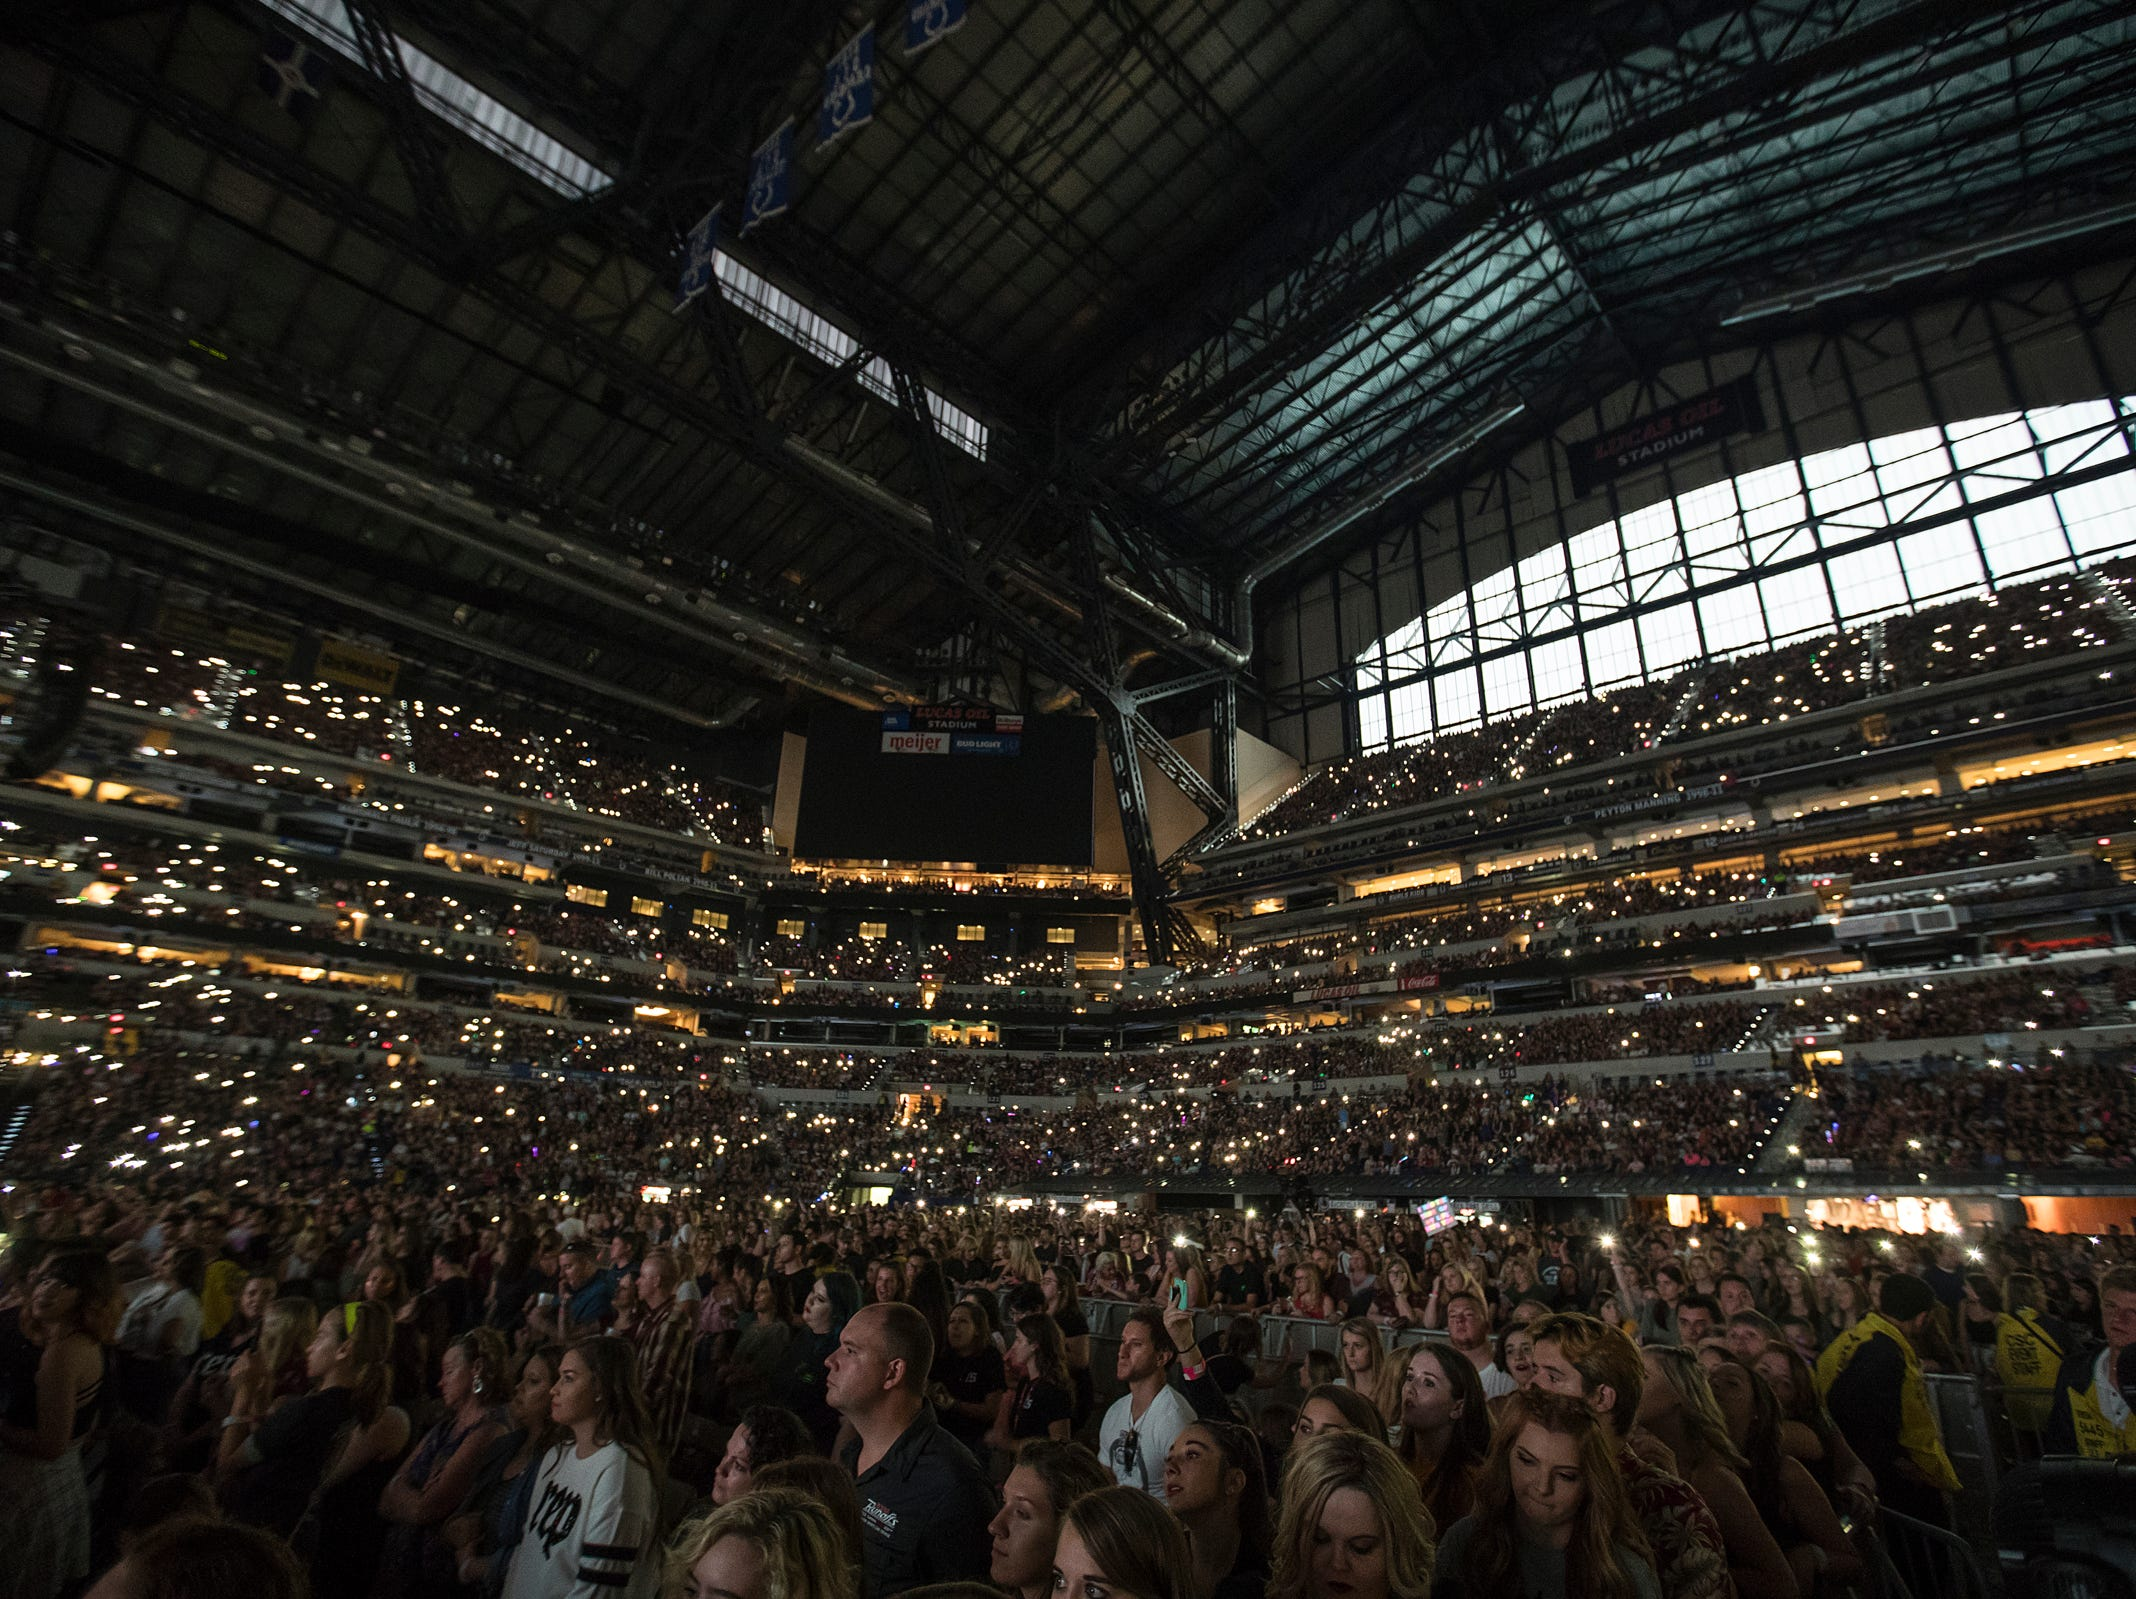 """Fans hold up lights while listening to Camila Cabello, an opening artist for Taylor Swift's """"Reputation"""" tour stop at Lucas Oil Stadium in Indianapolis, Saturday, Sept. 15, 2018. The show is 2018Õs biggest single-day concert in Indianapolis."""